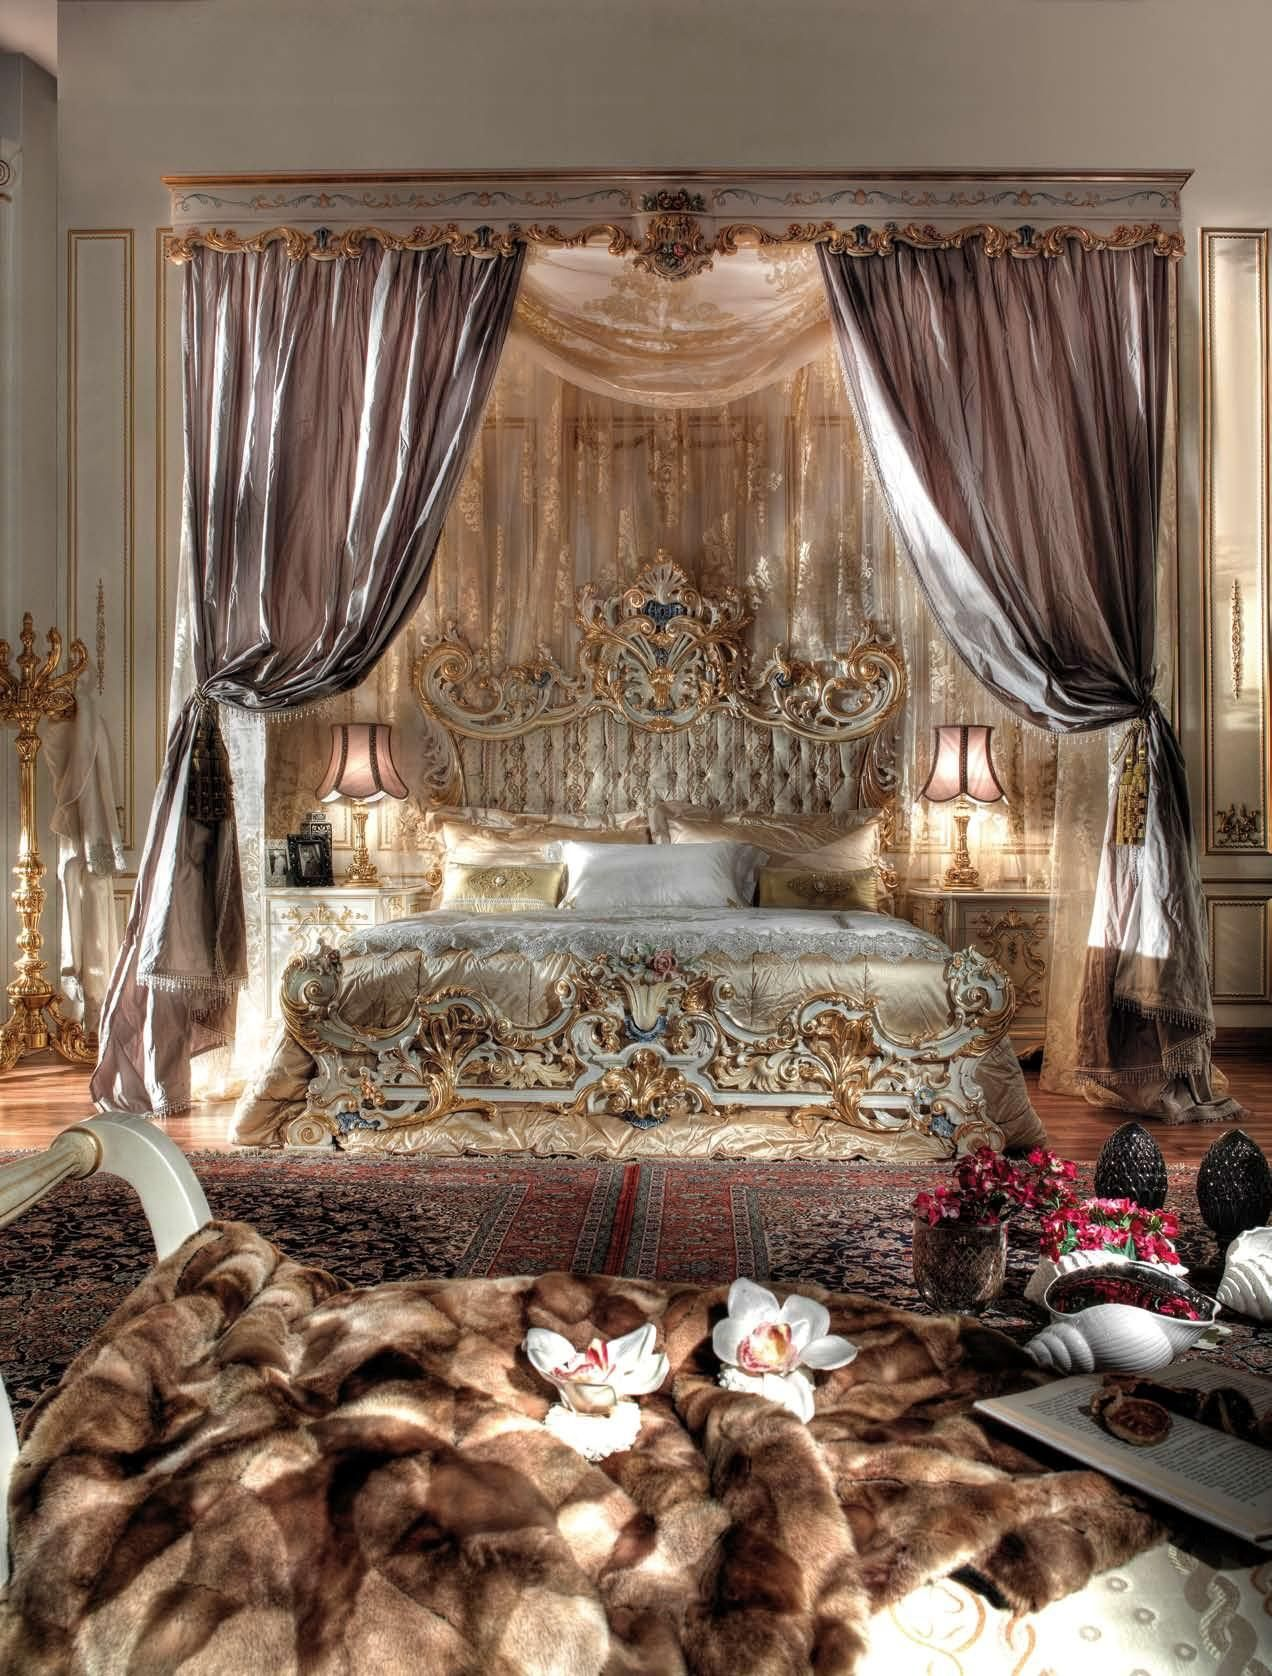 Baroque Royal Bedroom I Just Really Like That The Heavy